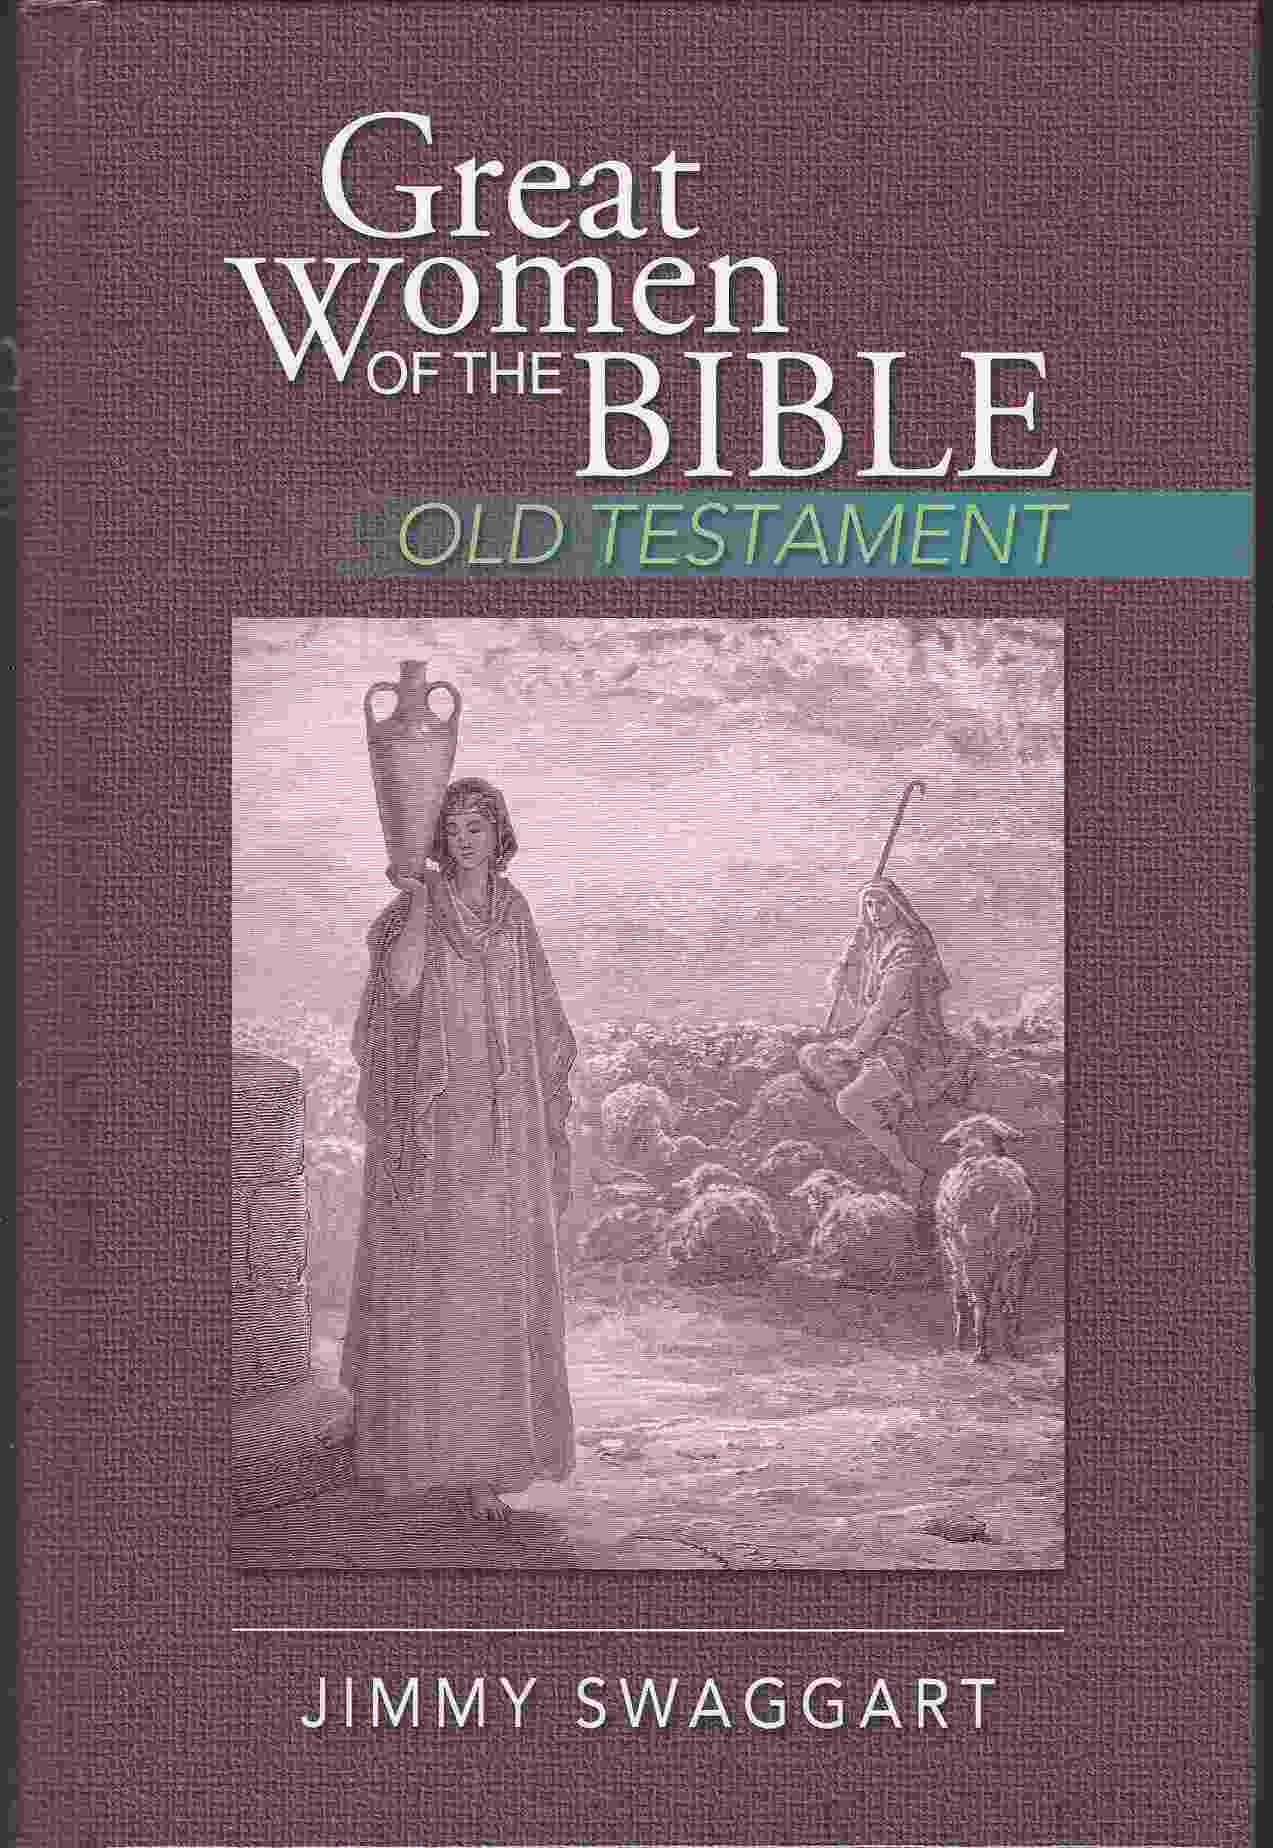 Image for GREAT WOMEN OF THE BIBLE, OLD TESTAMENT